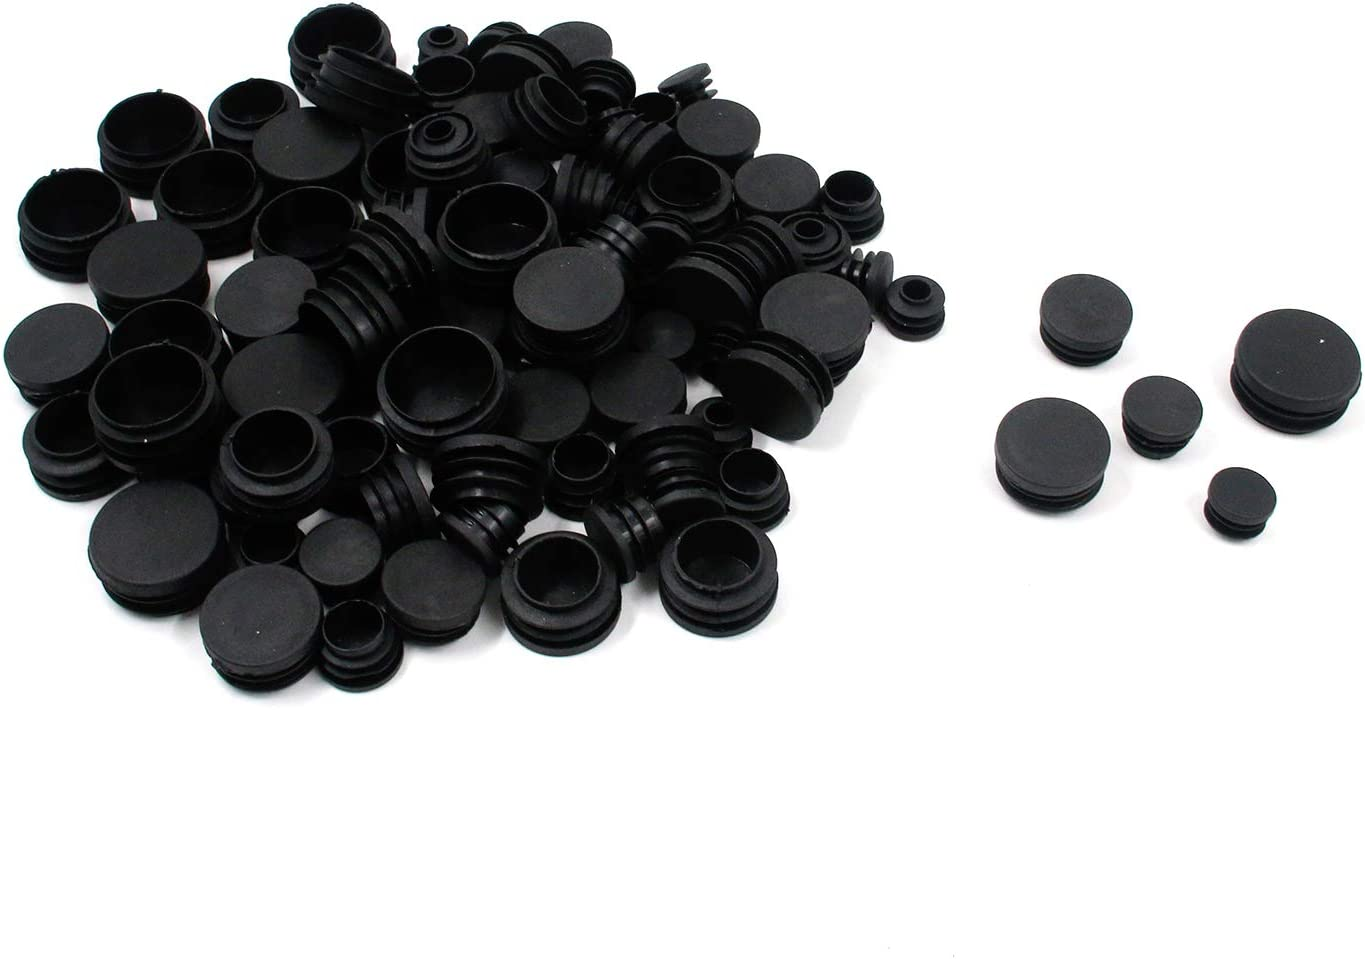 MTMTOOL 100Pcs Mixed Sizes Black P Popular products Furniture New product Round Plugs Plastic